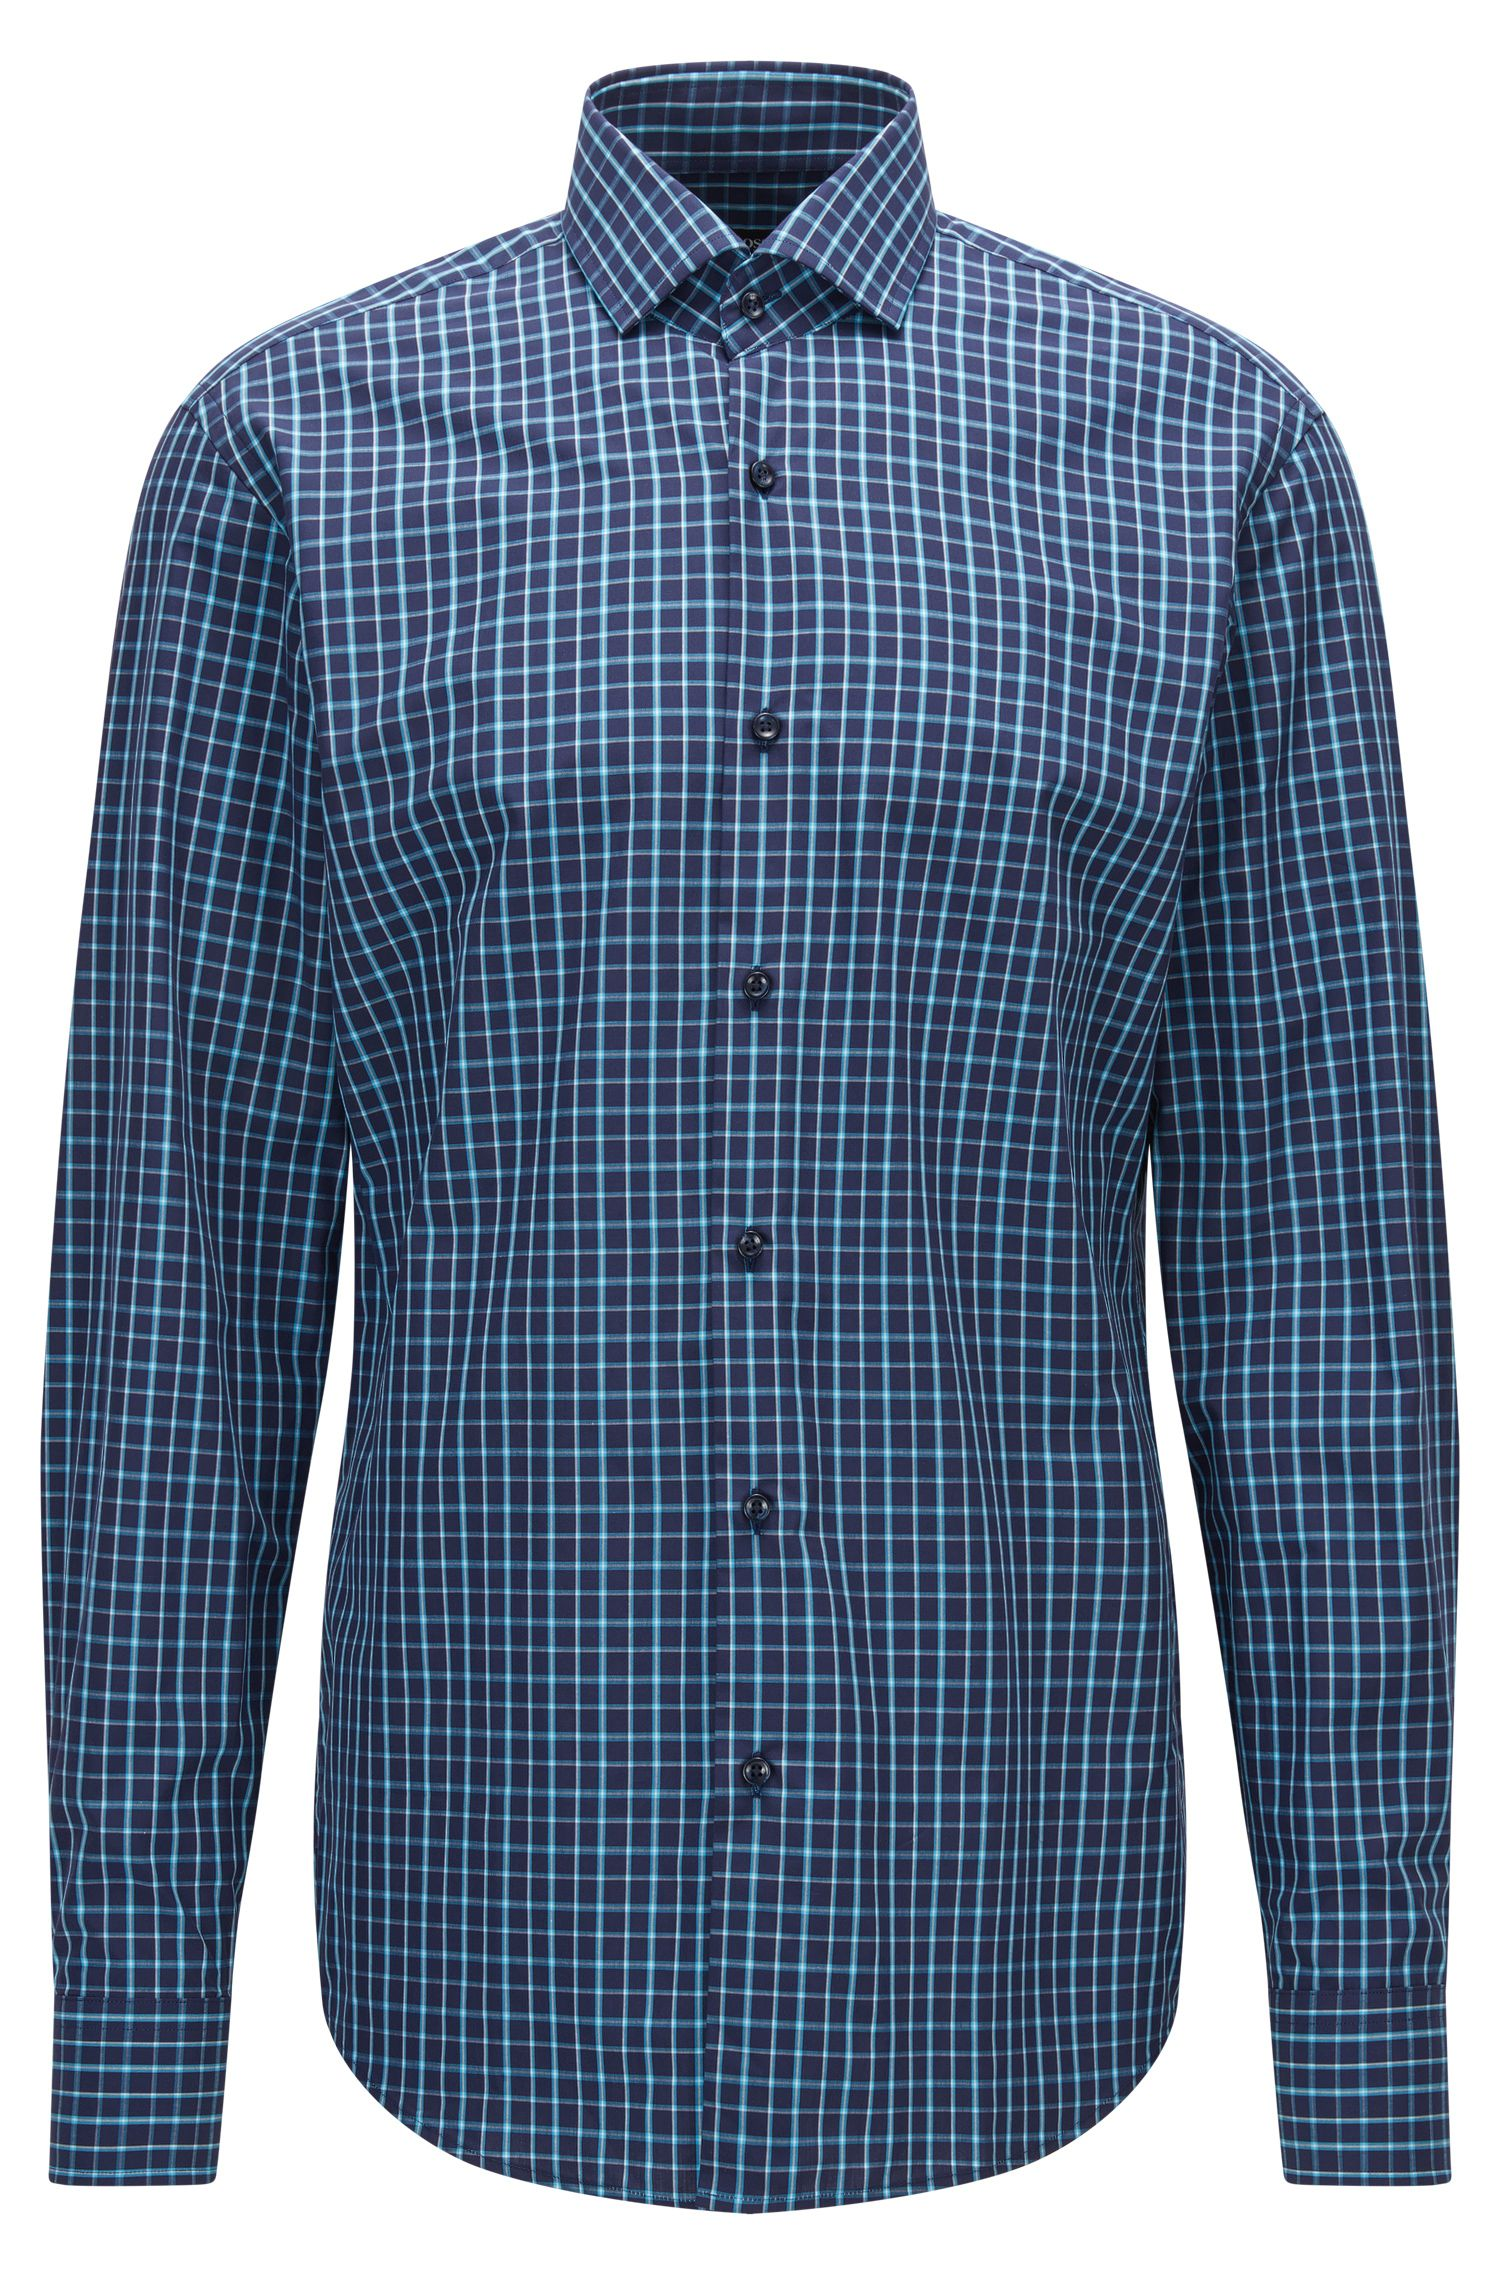 Double Windowpane Cotton Dress Shirt, Regular Fit | Gordon